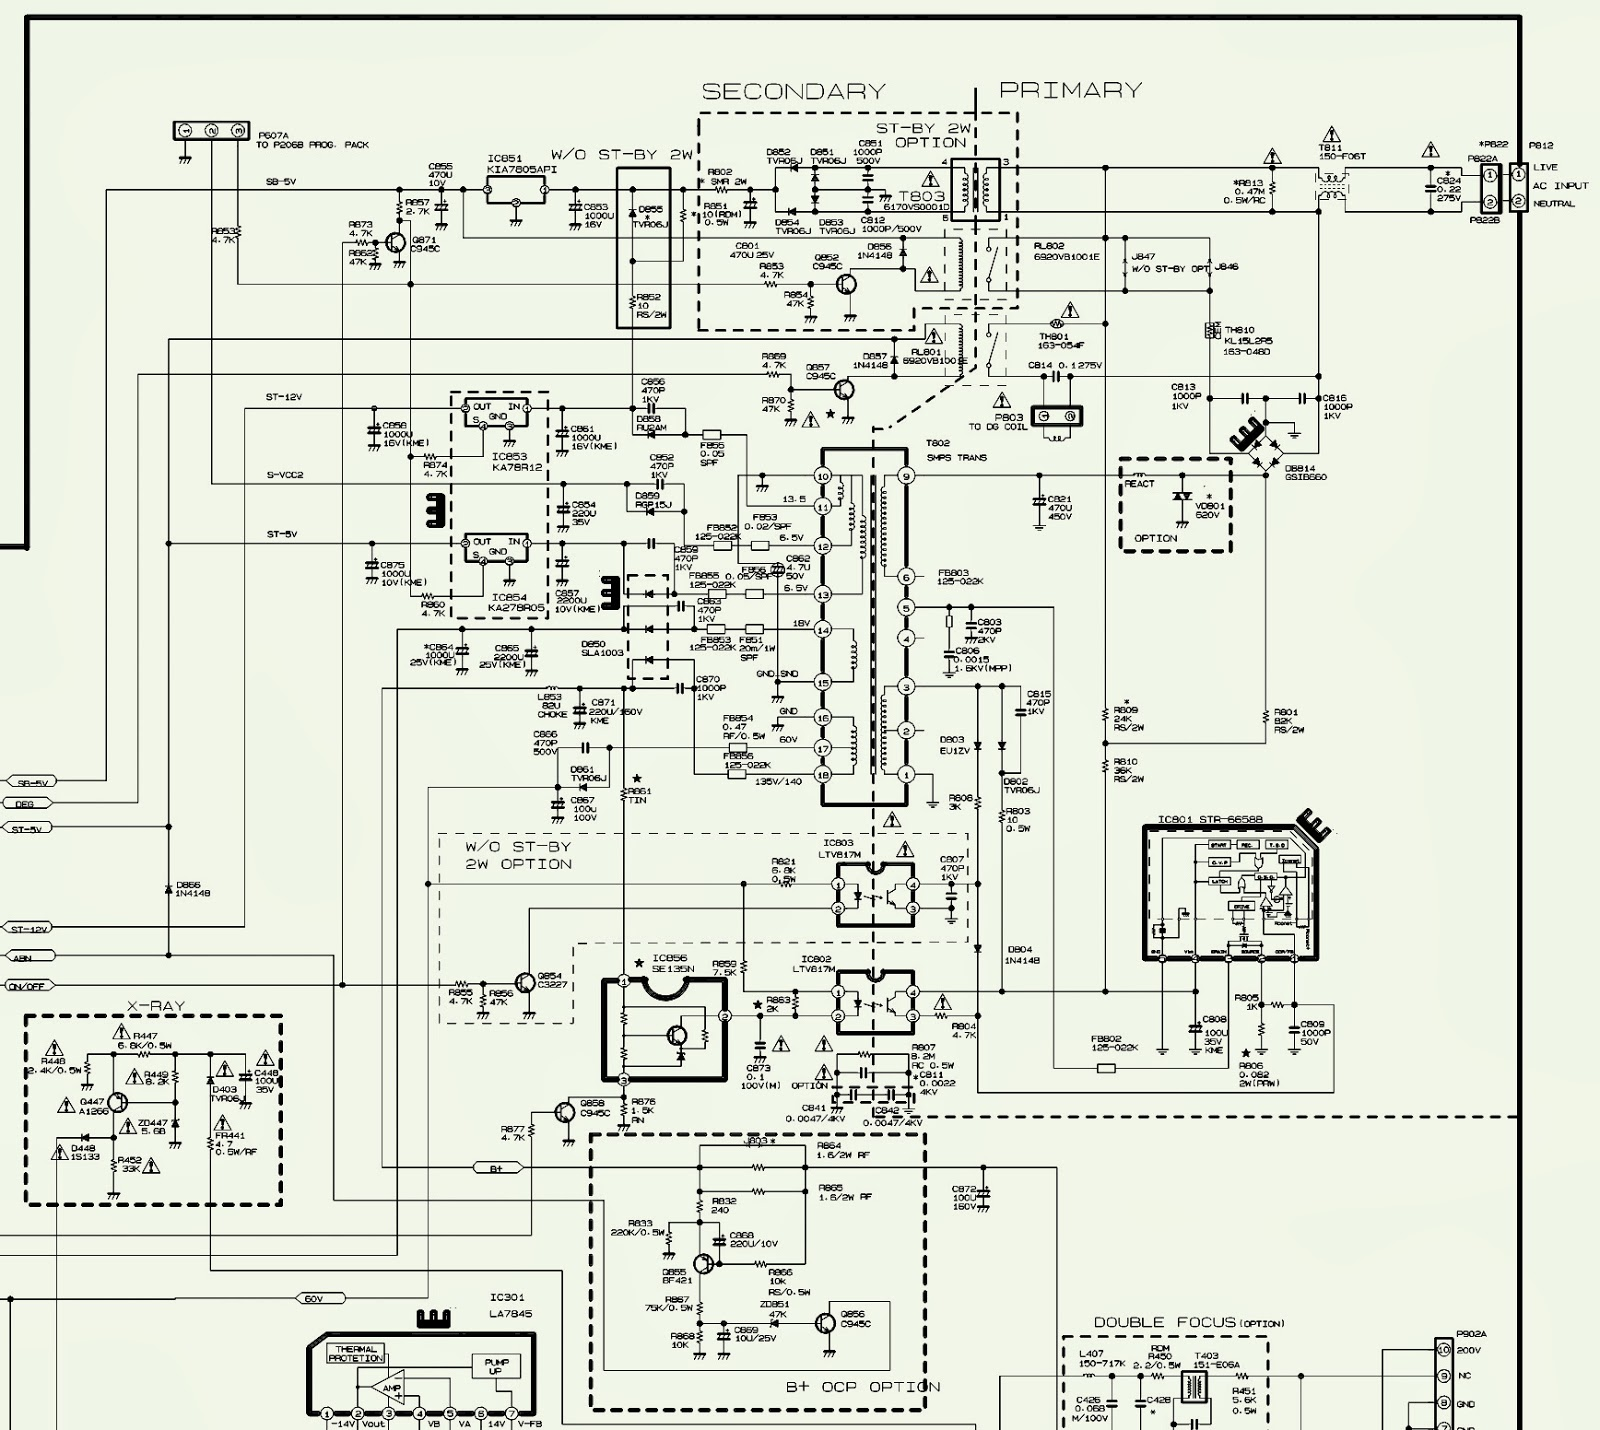 medium resolution of wiring diagram lg tv wiring diagram blogs maytag washer wiring diagram wiring diagram lg tv